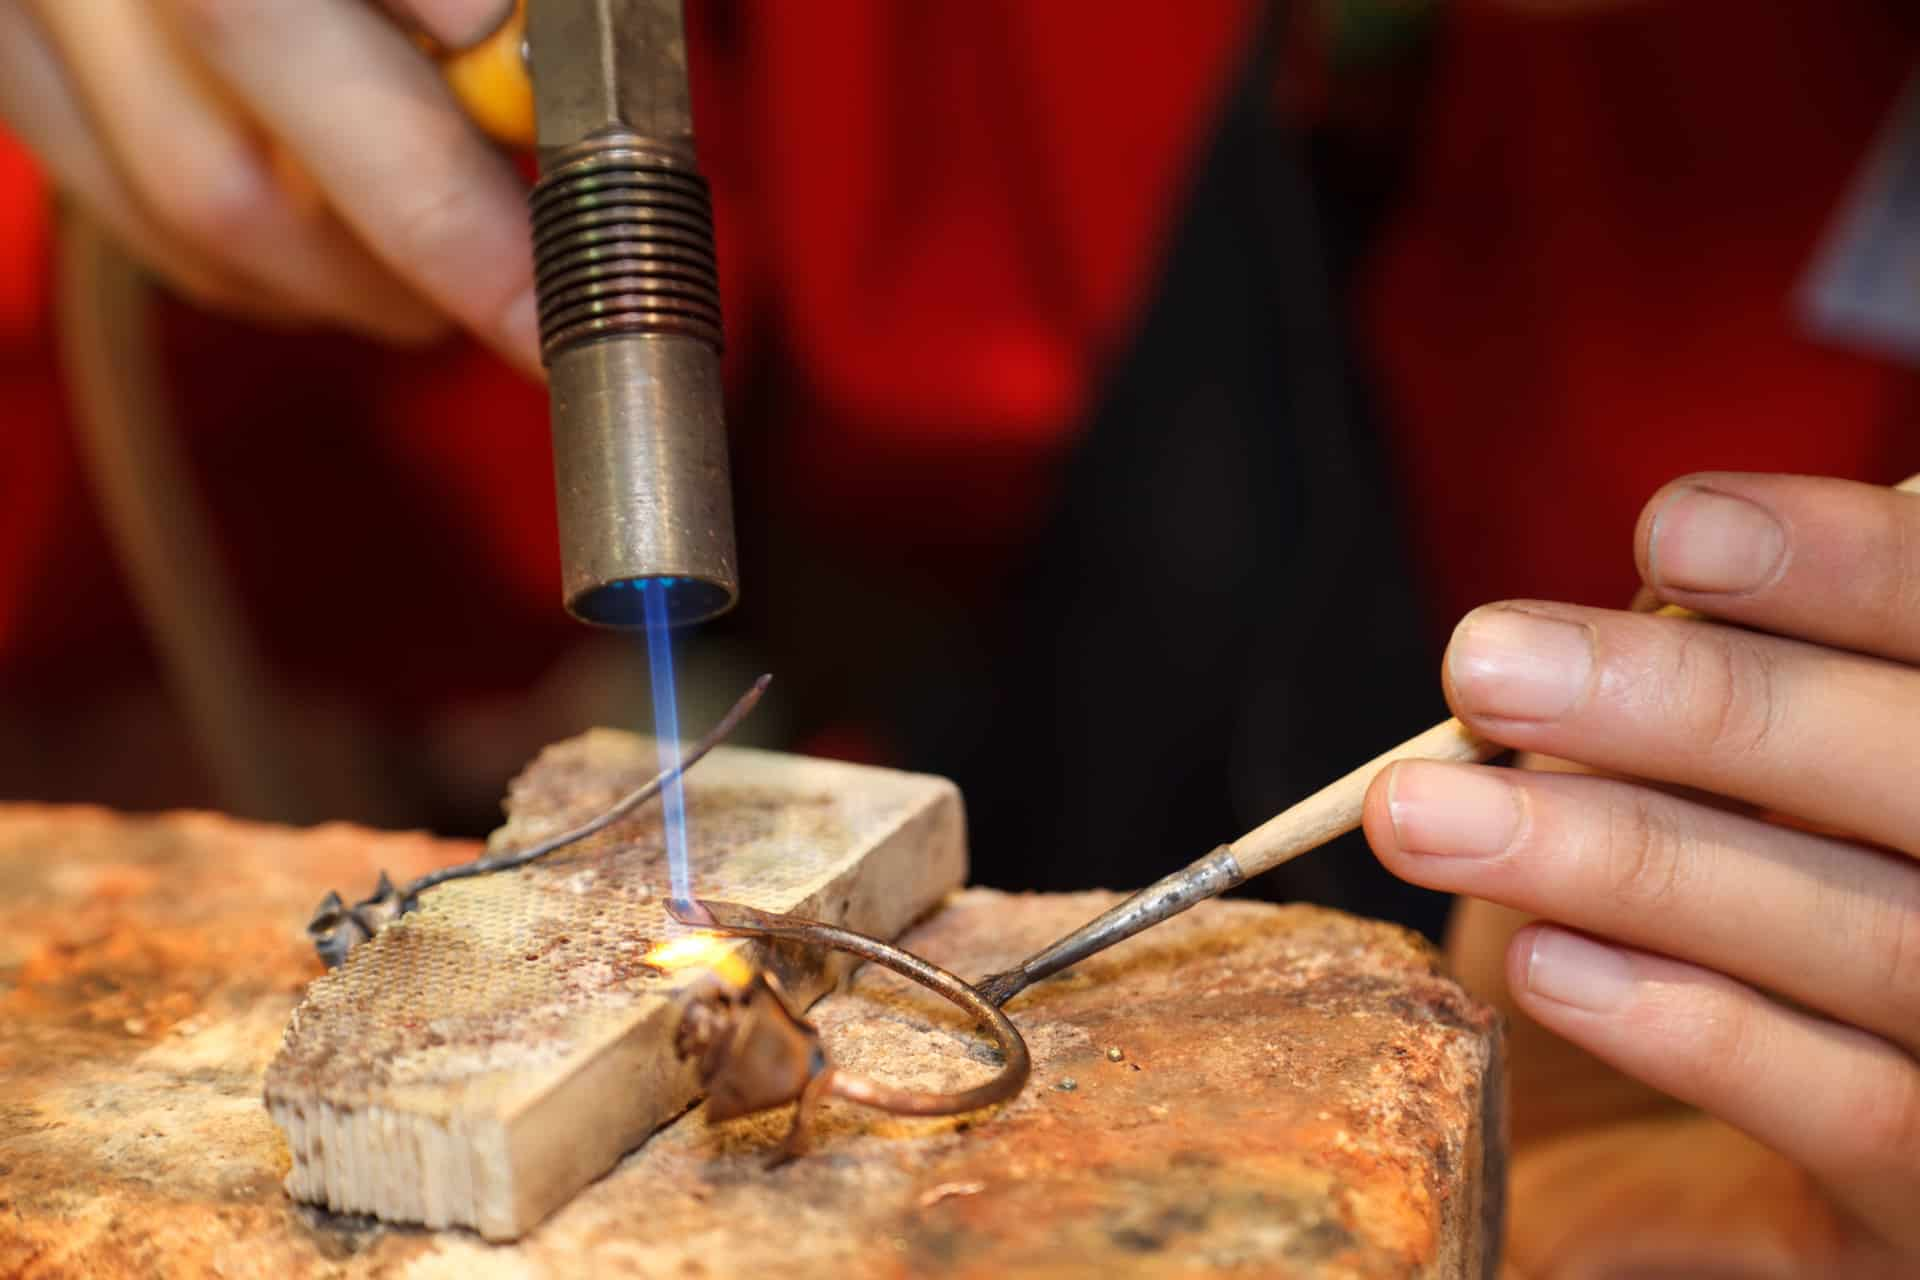 jewelry soldering services near you in Yelm